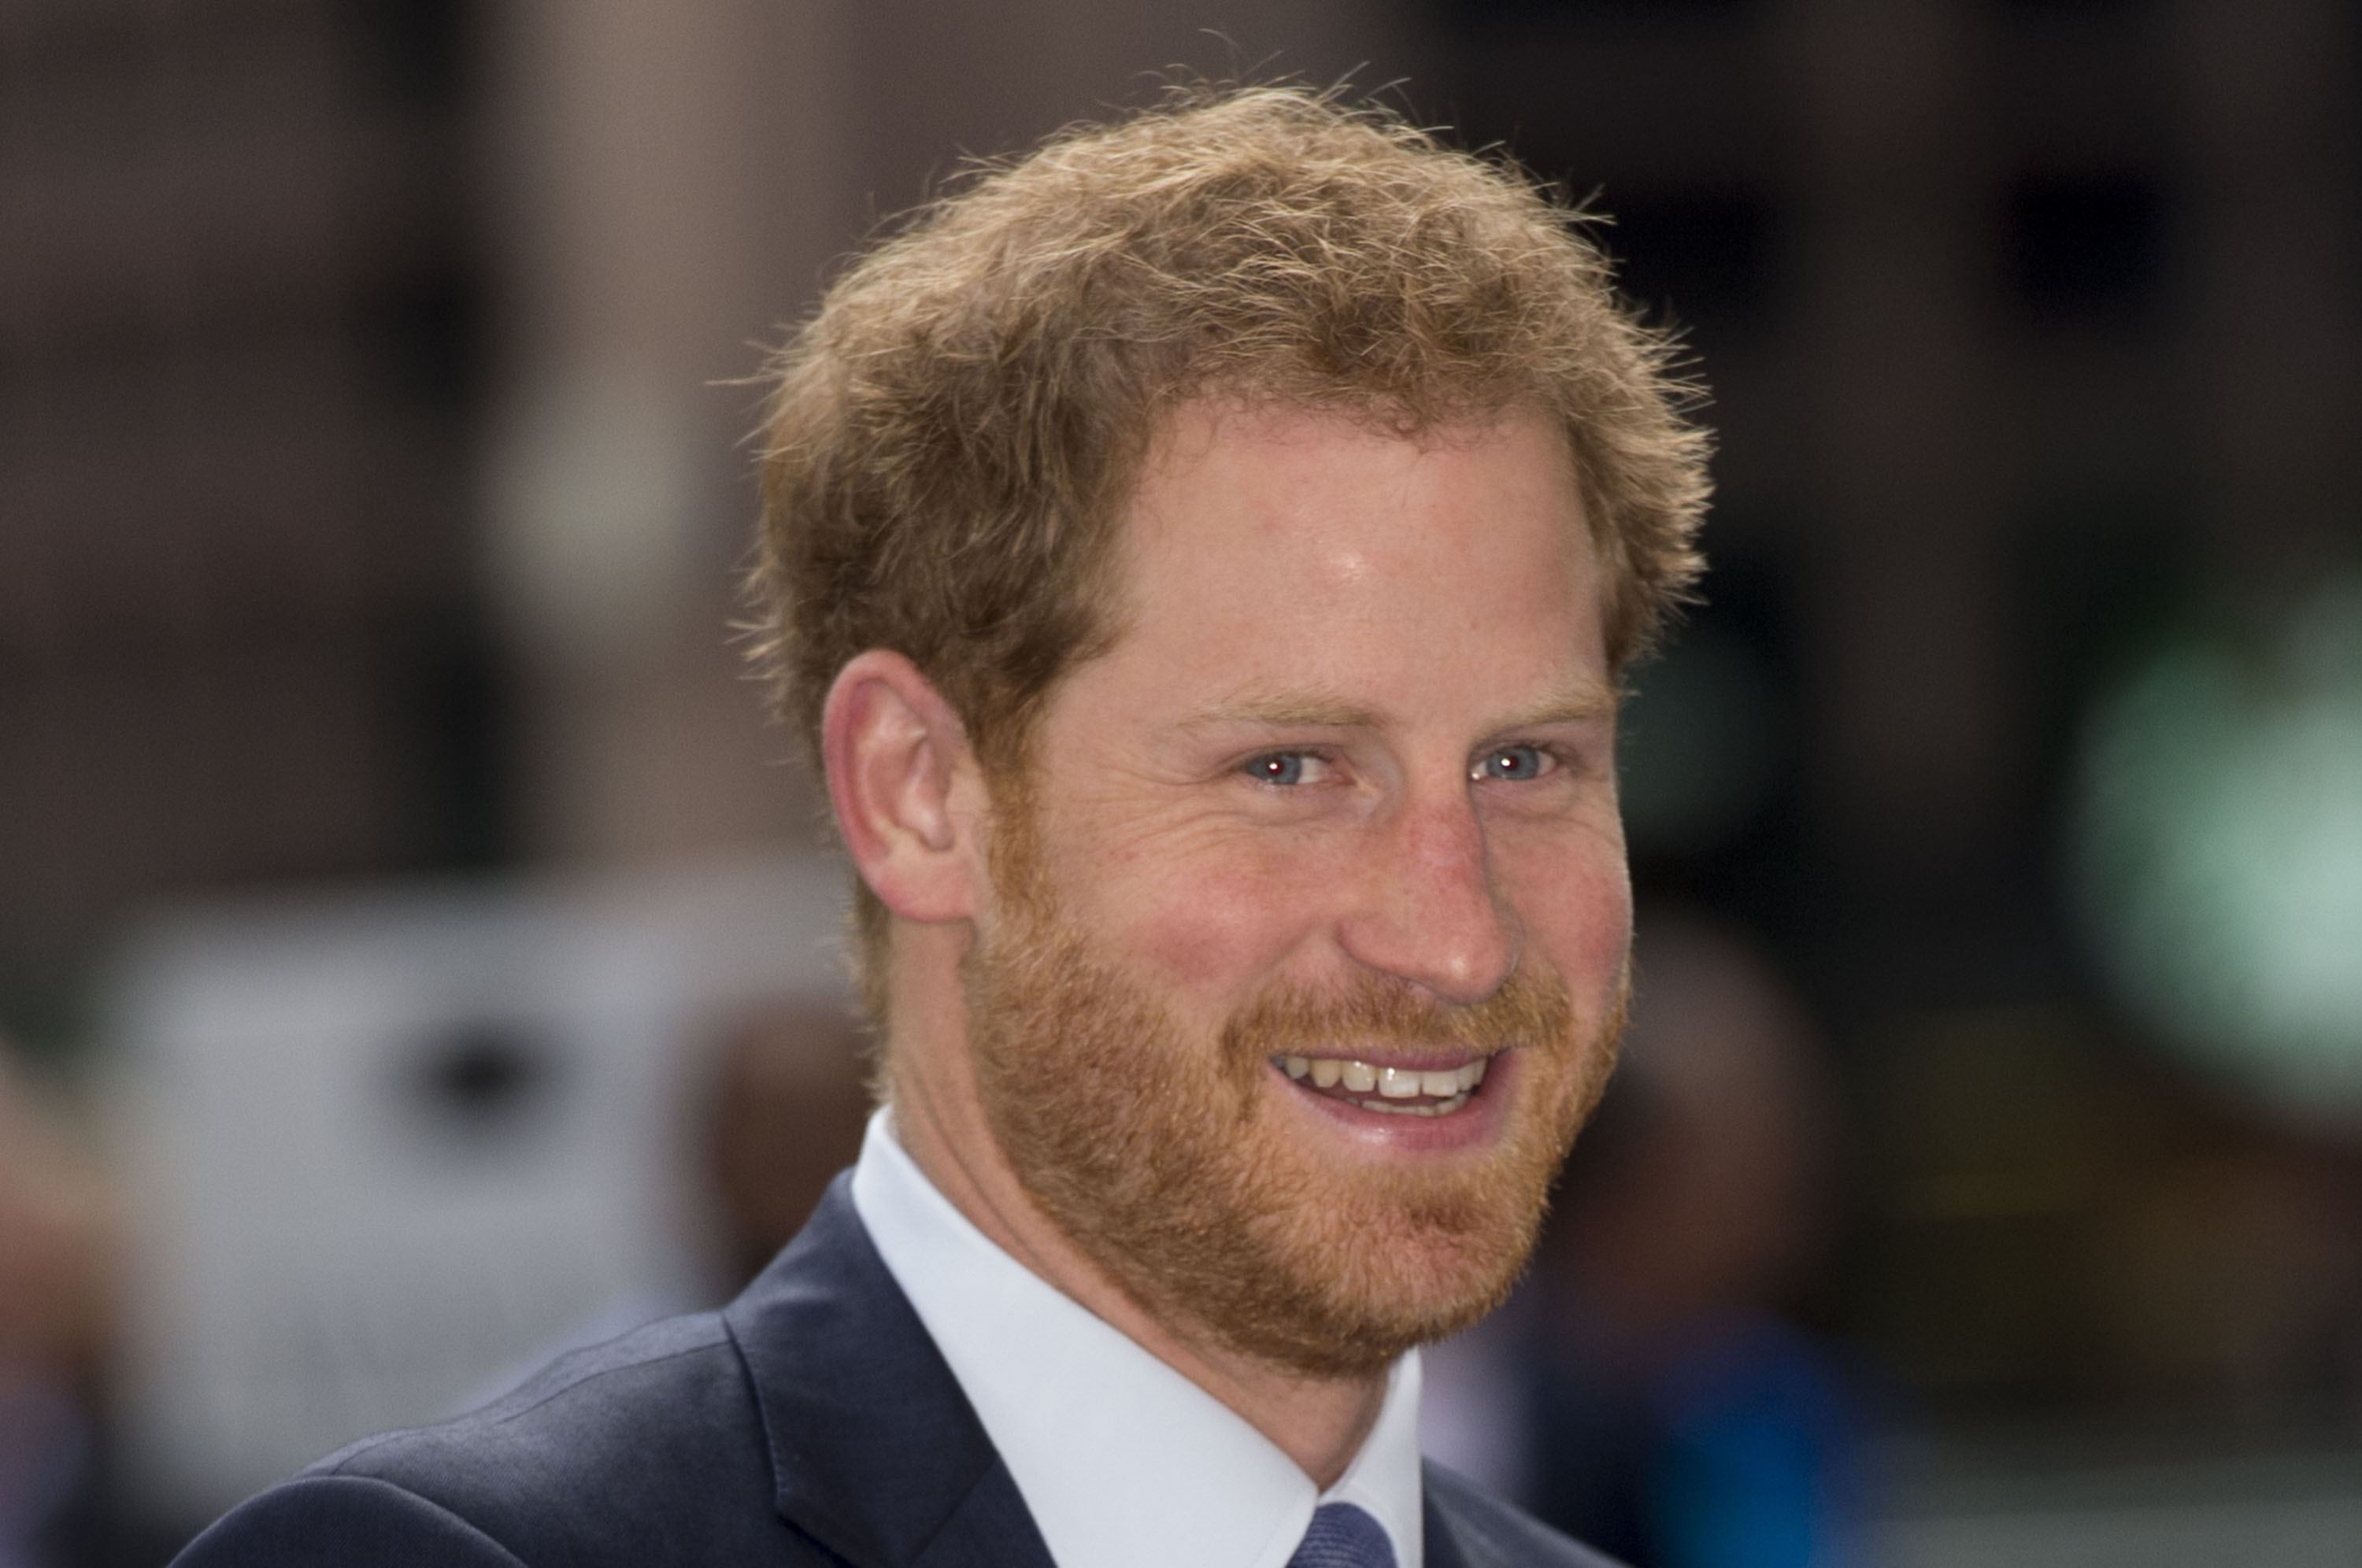 Prince Harry attends the ICAP's 24th annual charity trading day in aid of Sentebale at ICAP on December 7, 2016 in London, England.